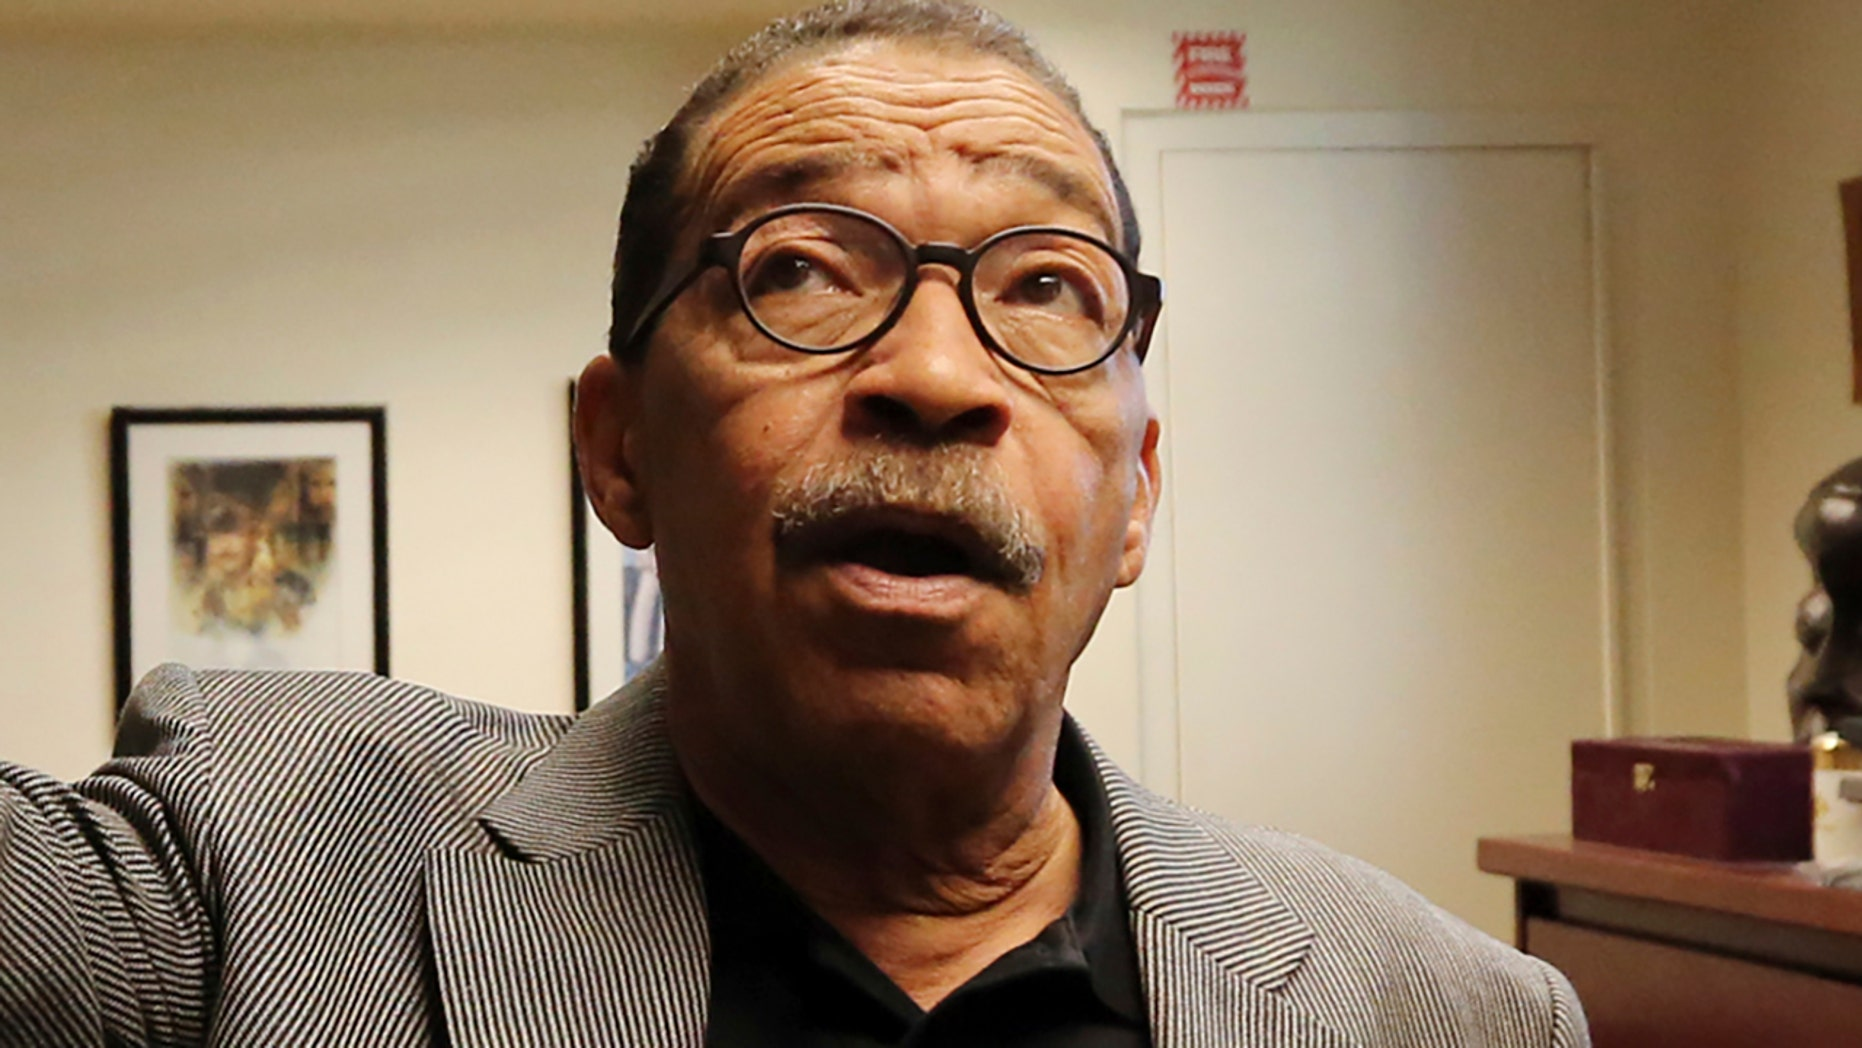 President of the Los Angeles City Council Herb Wesson describes how members of his staff heard noises in the city hall.